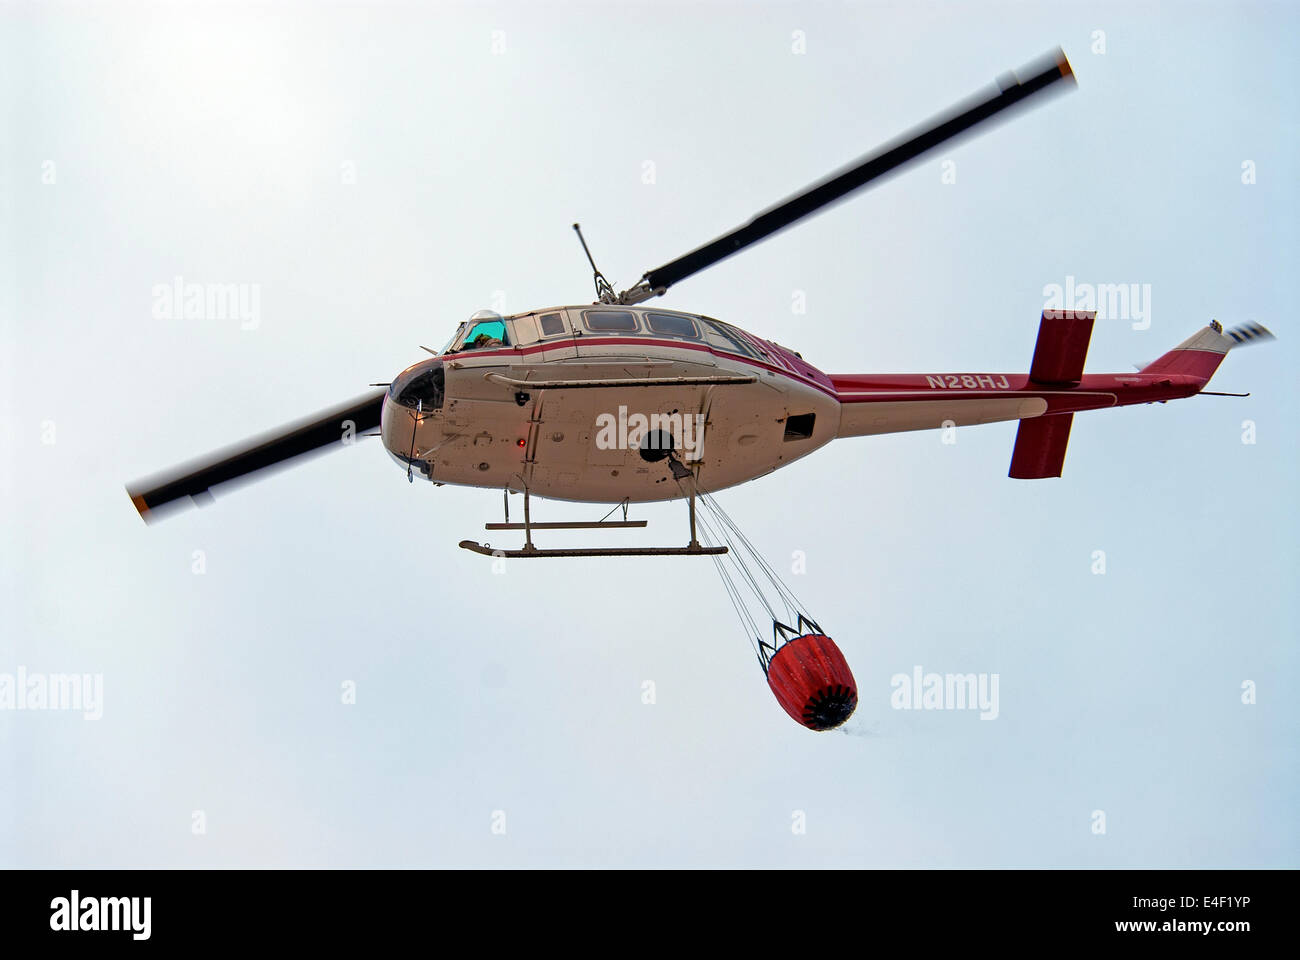 Fire fighter helicopter, USA - Stock Image